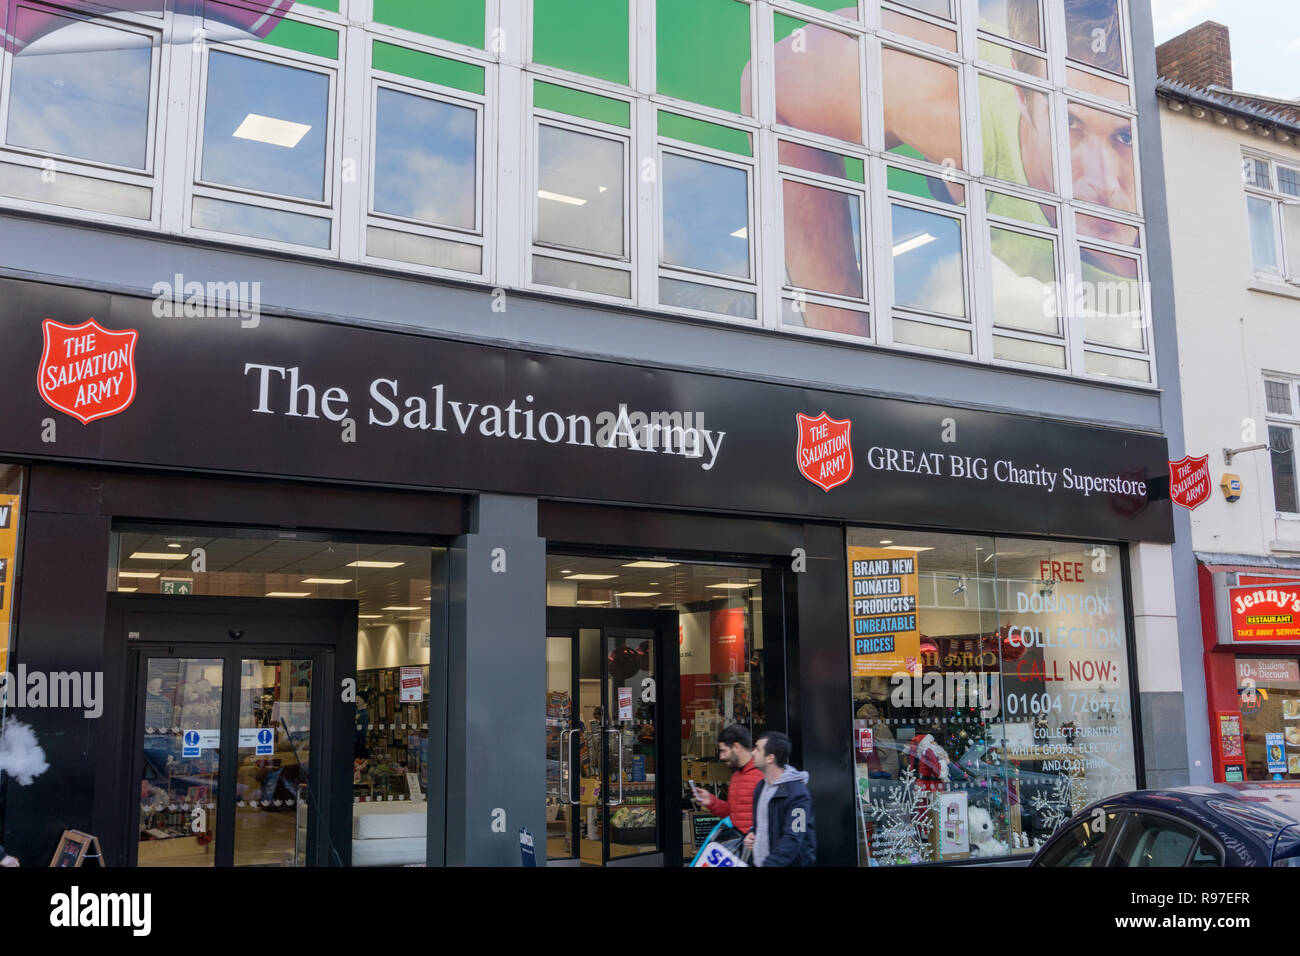 The Salvation Army's first Great Big Charity Superstore opened in 2017, Northampton, UK - Stock Image